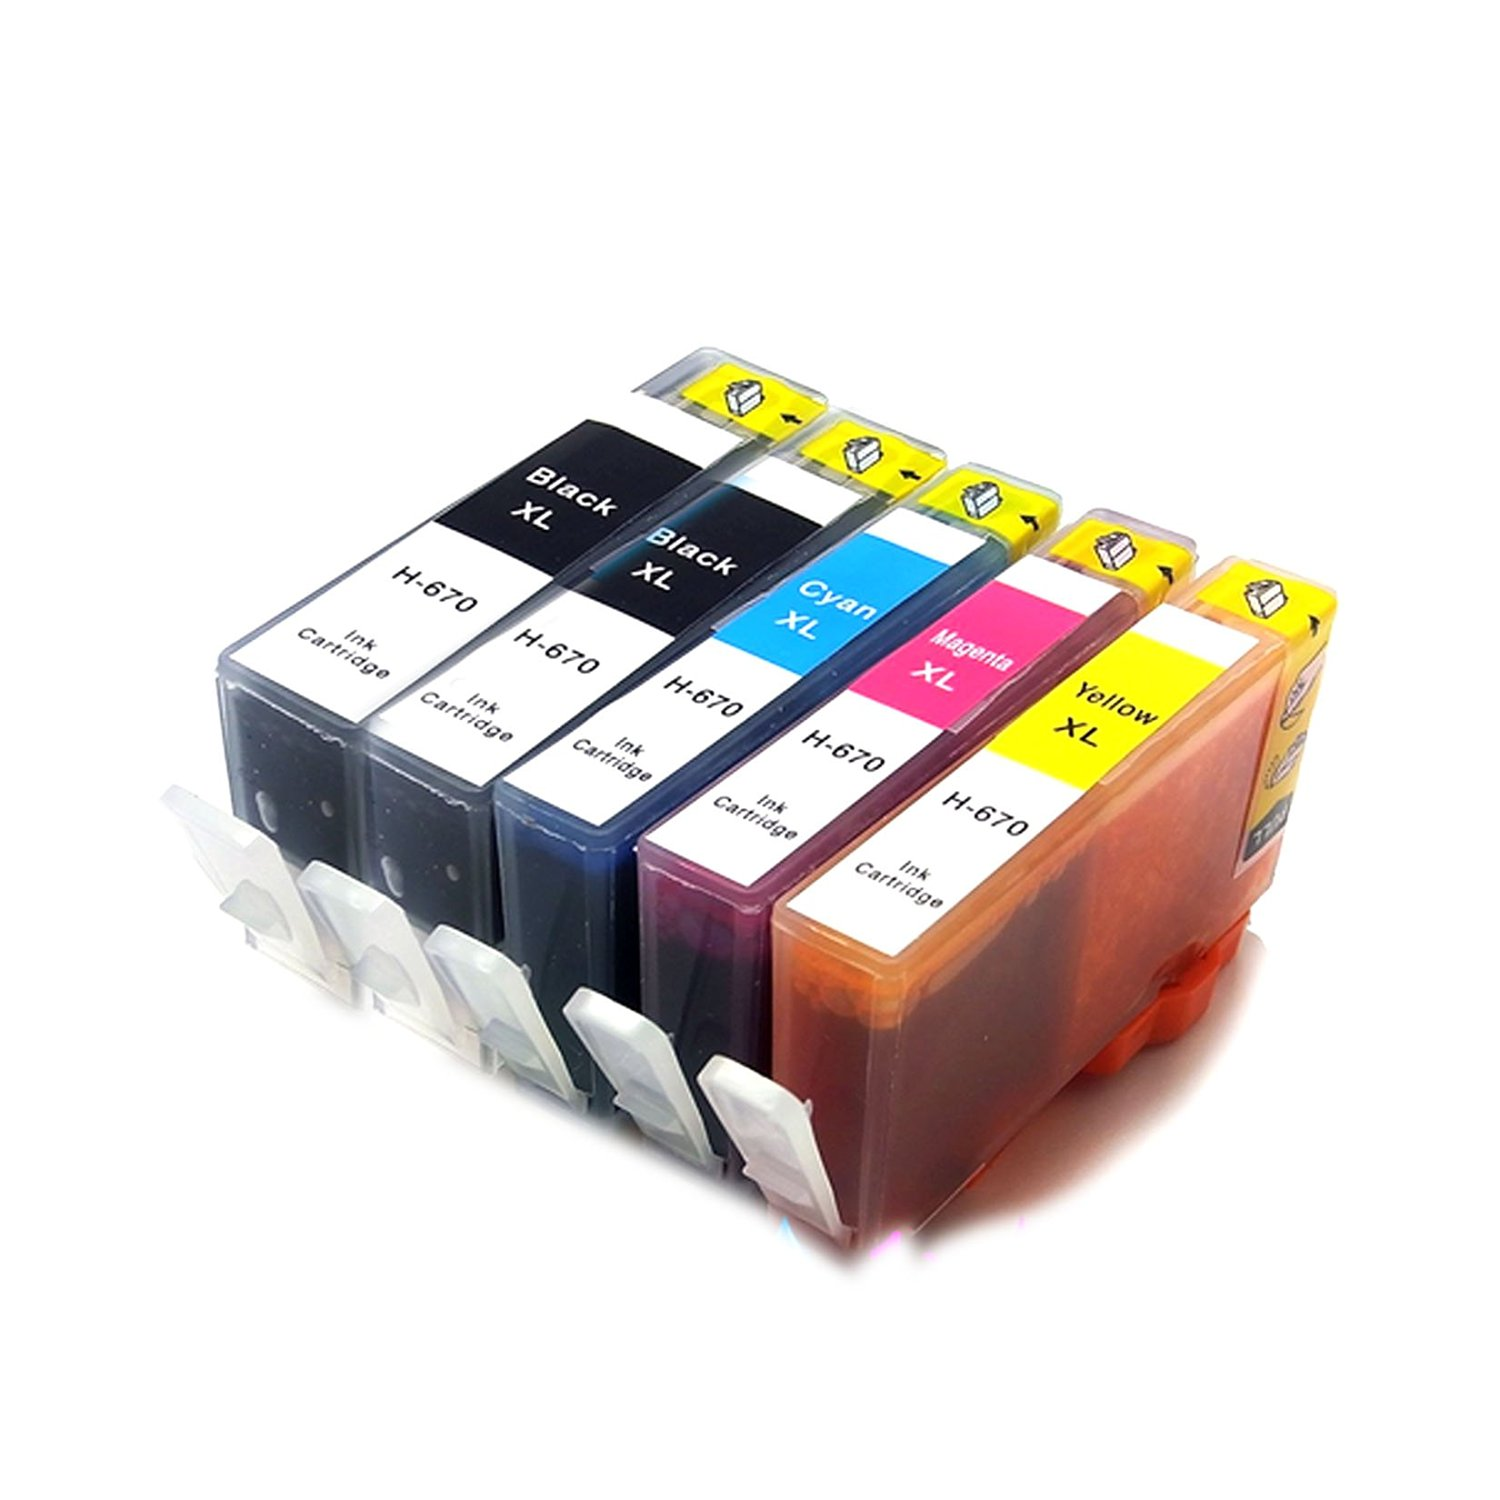 Generic 1 X 5 NEW Ink Cartridges Compatible Replacement For HP 670XL (Deskjet Ink Advantage 3525 4615 4620 4625 5525 6526)